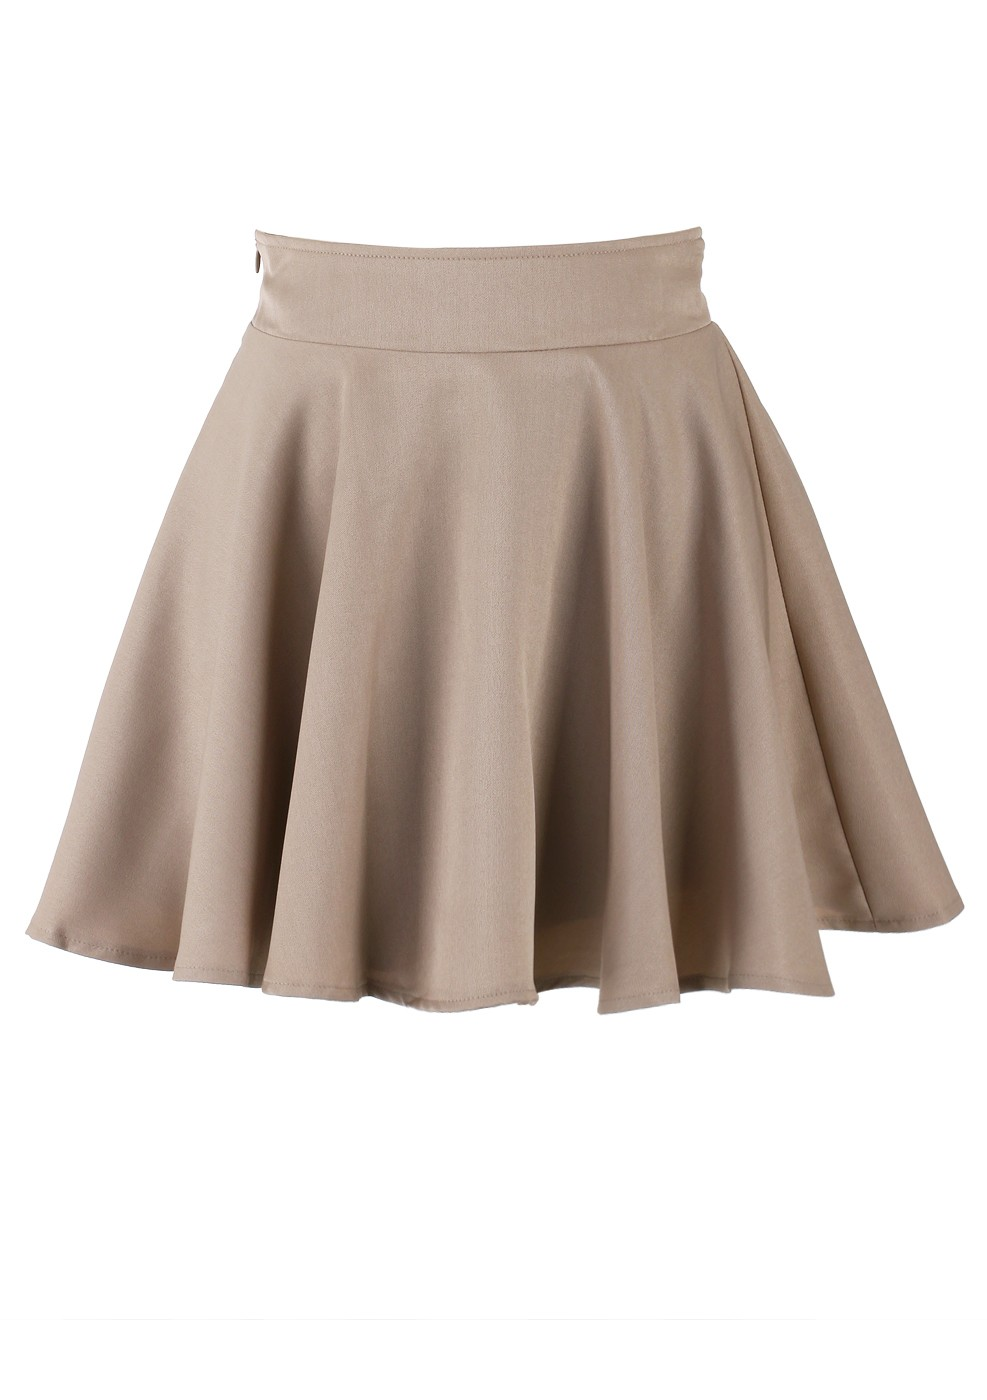 Pencil/High Waist Skirt - Khaki Skater High Waist Skirt | UsTrendy